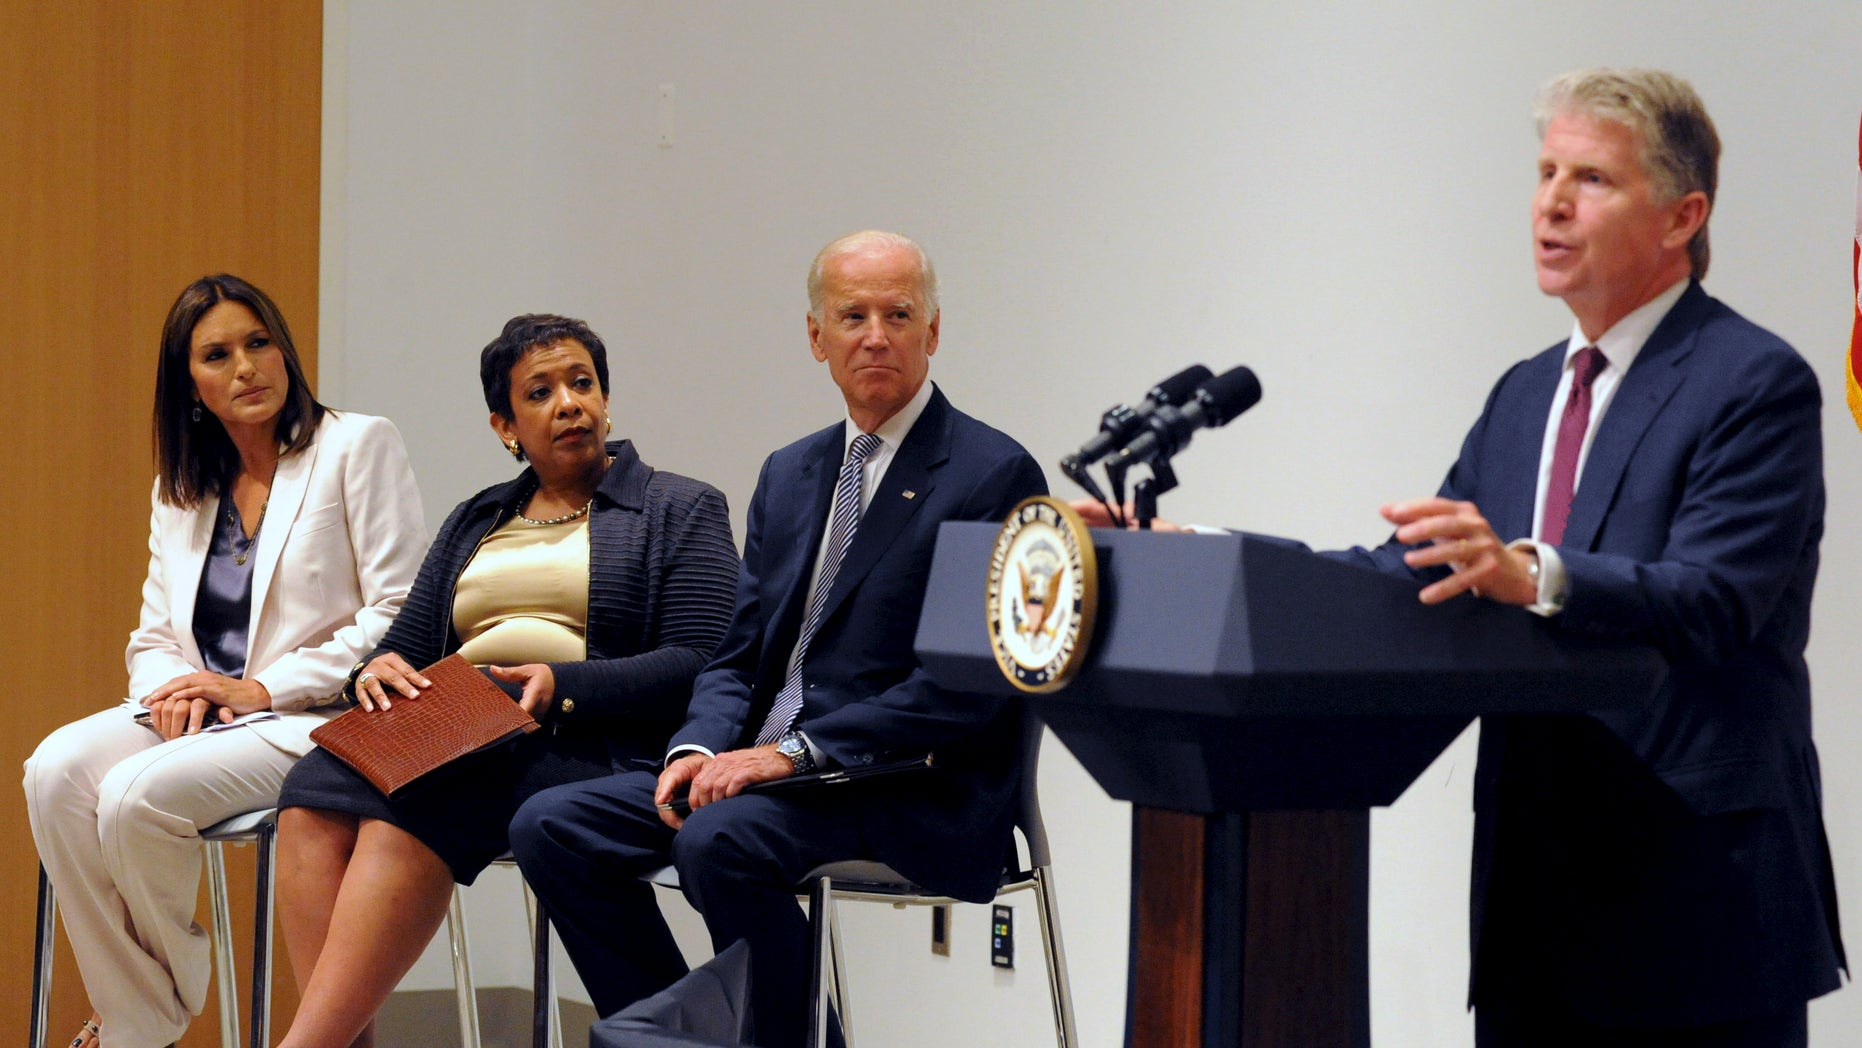 """Manhattan District Attorney Cyrus R. Vance (R) speaks at the podium as U.S. Vice President Joe Biden and U.S. Attorney General Loretta B. Lynch look on with actress Mariska Hargitay (L) during an news conference in New York, September 10, 2015. The three were announcing the award of approximately $80 million in grants to eliminate backlogs of untested sexual assault evidence kits or """"rape kits."""""""